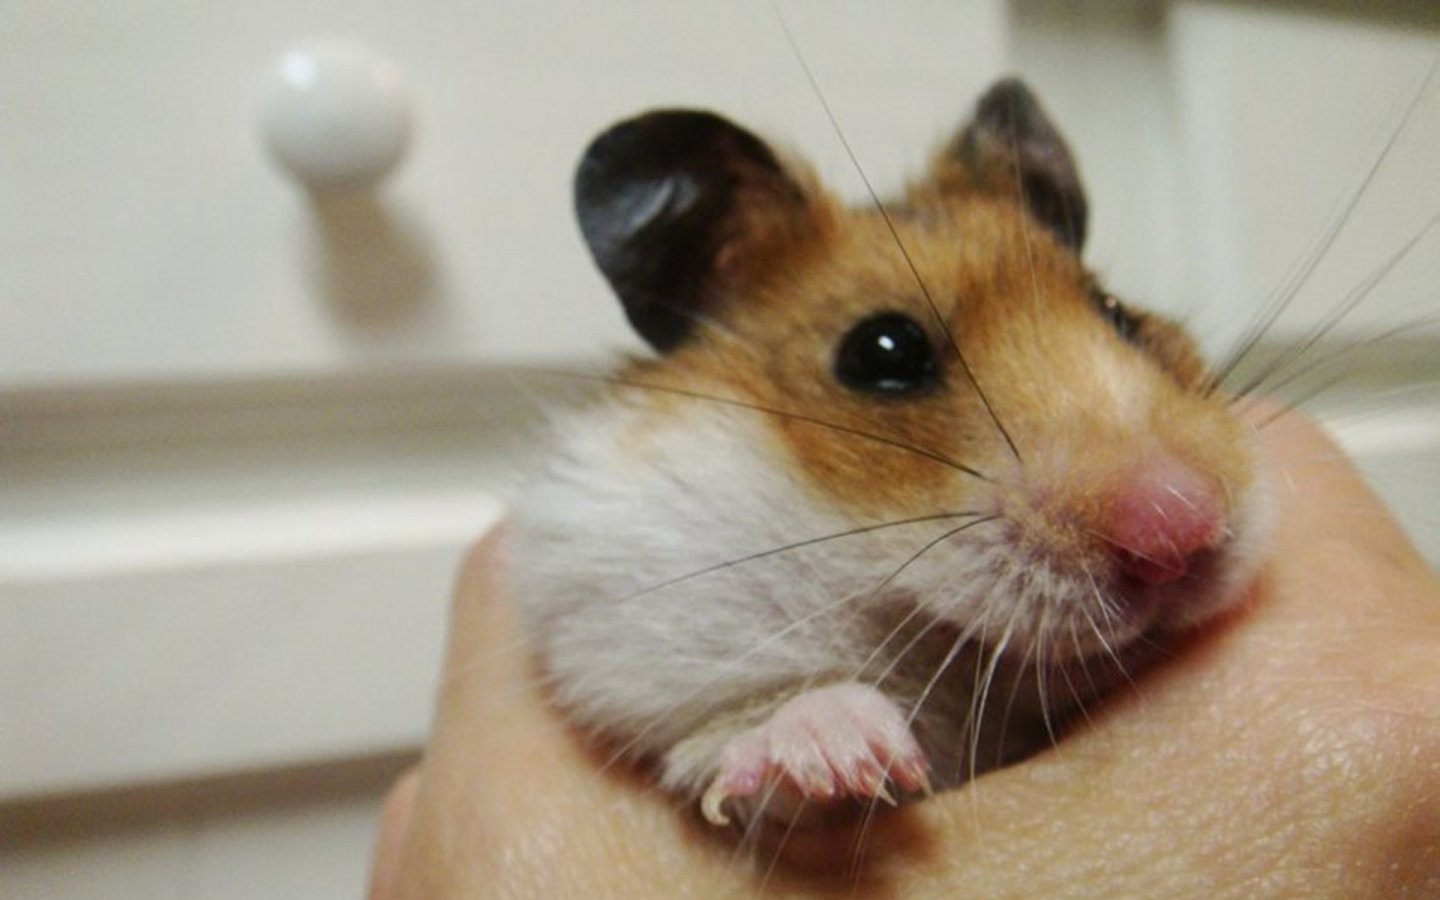 Cute Hamster 1440x900 Wallpapers 1440x900 Wallpapers Pictures 1440x900